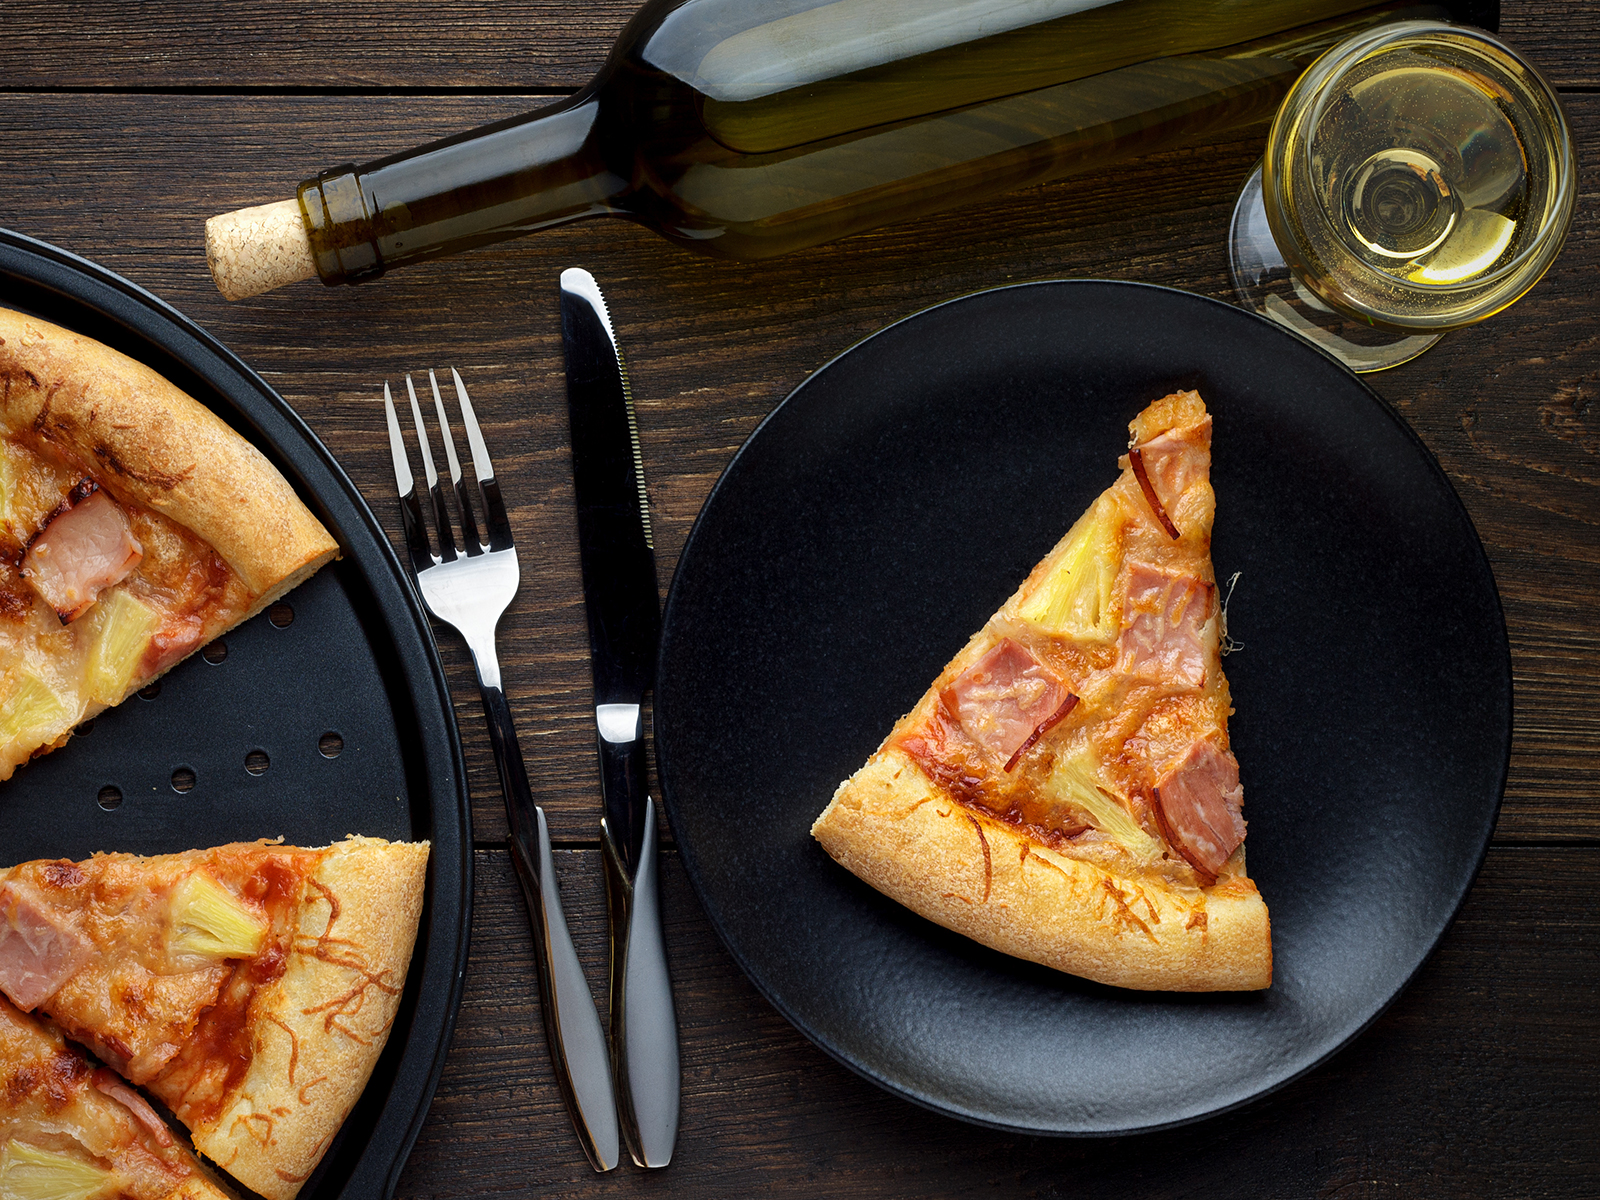 wine and pizza and other fast foods